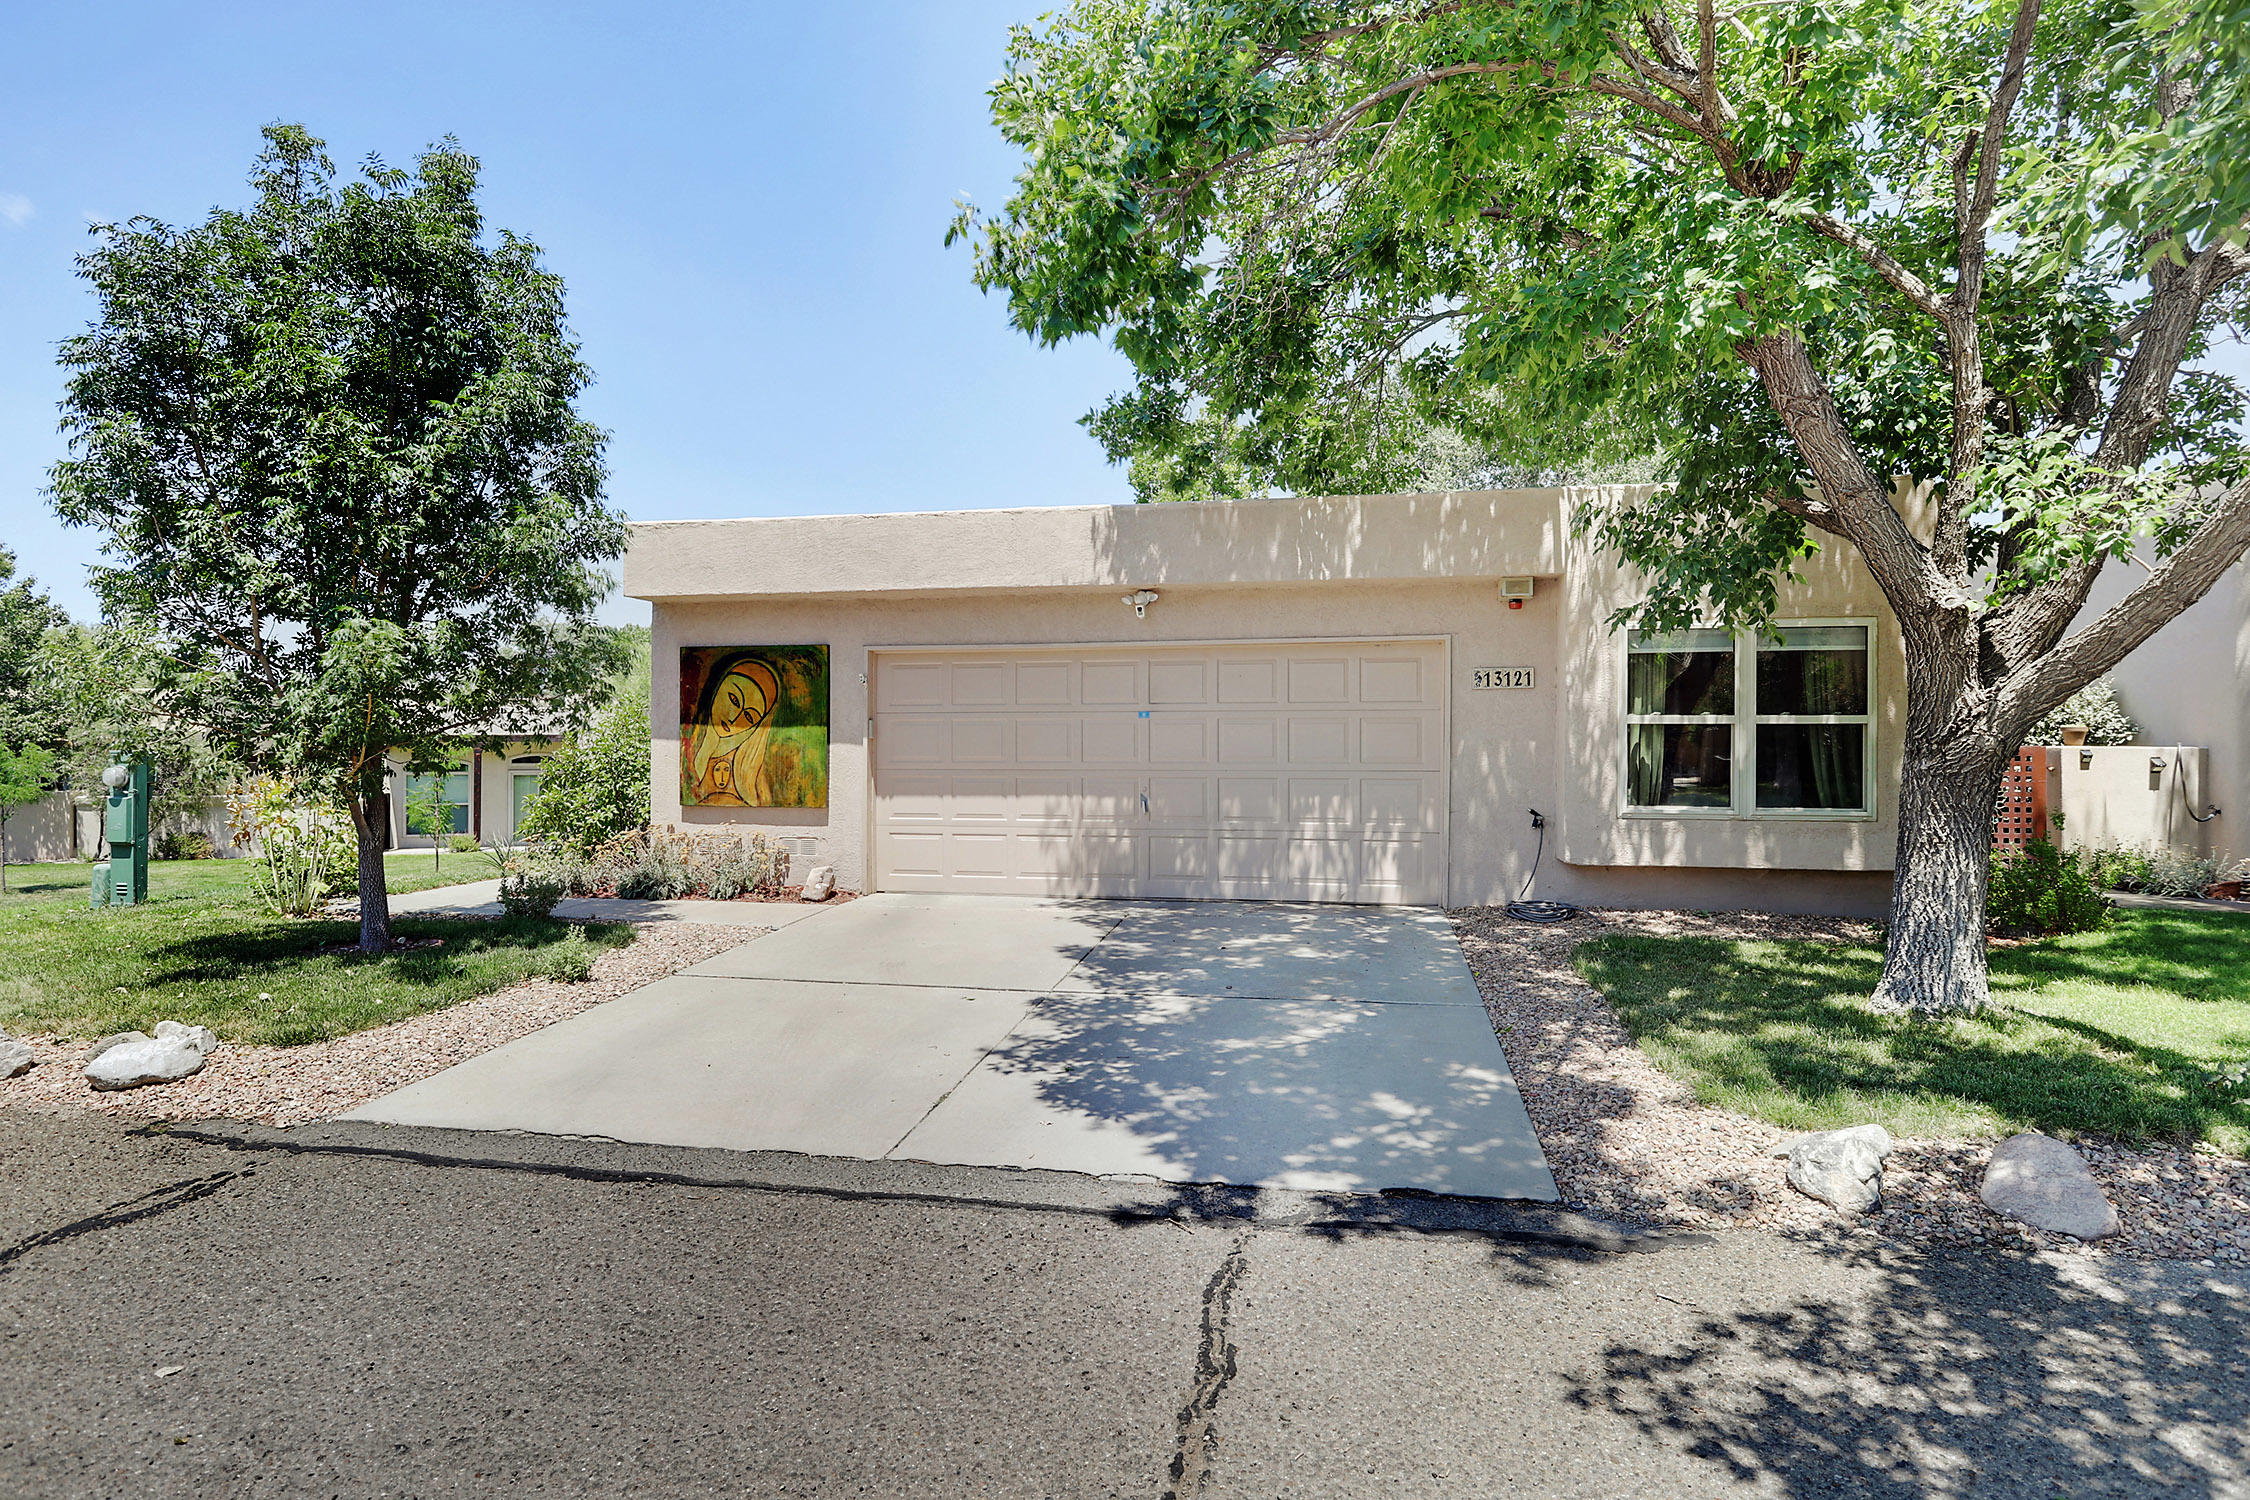 13121 NANDINA Lane SE Property Photo - Albuquerque, NM real estate listing